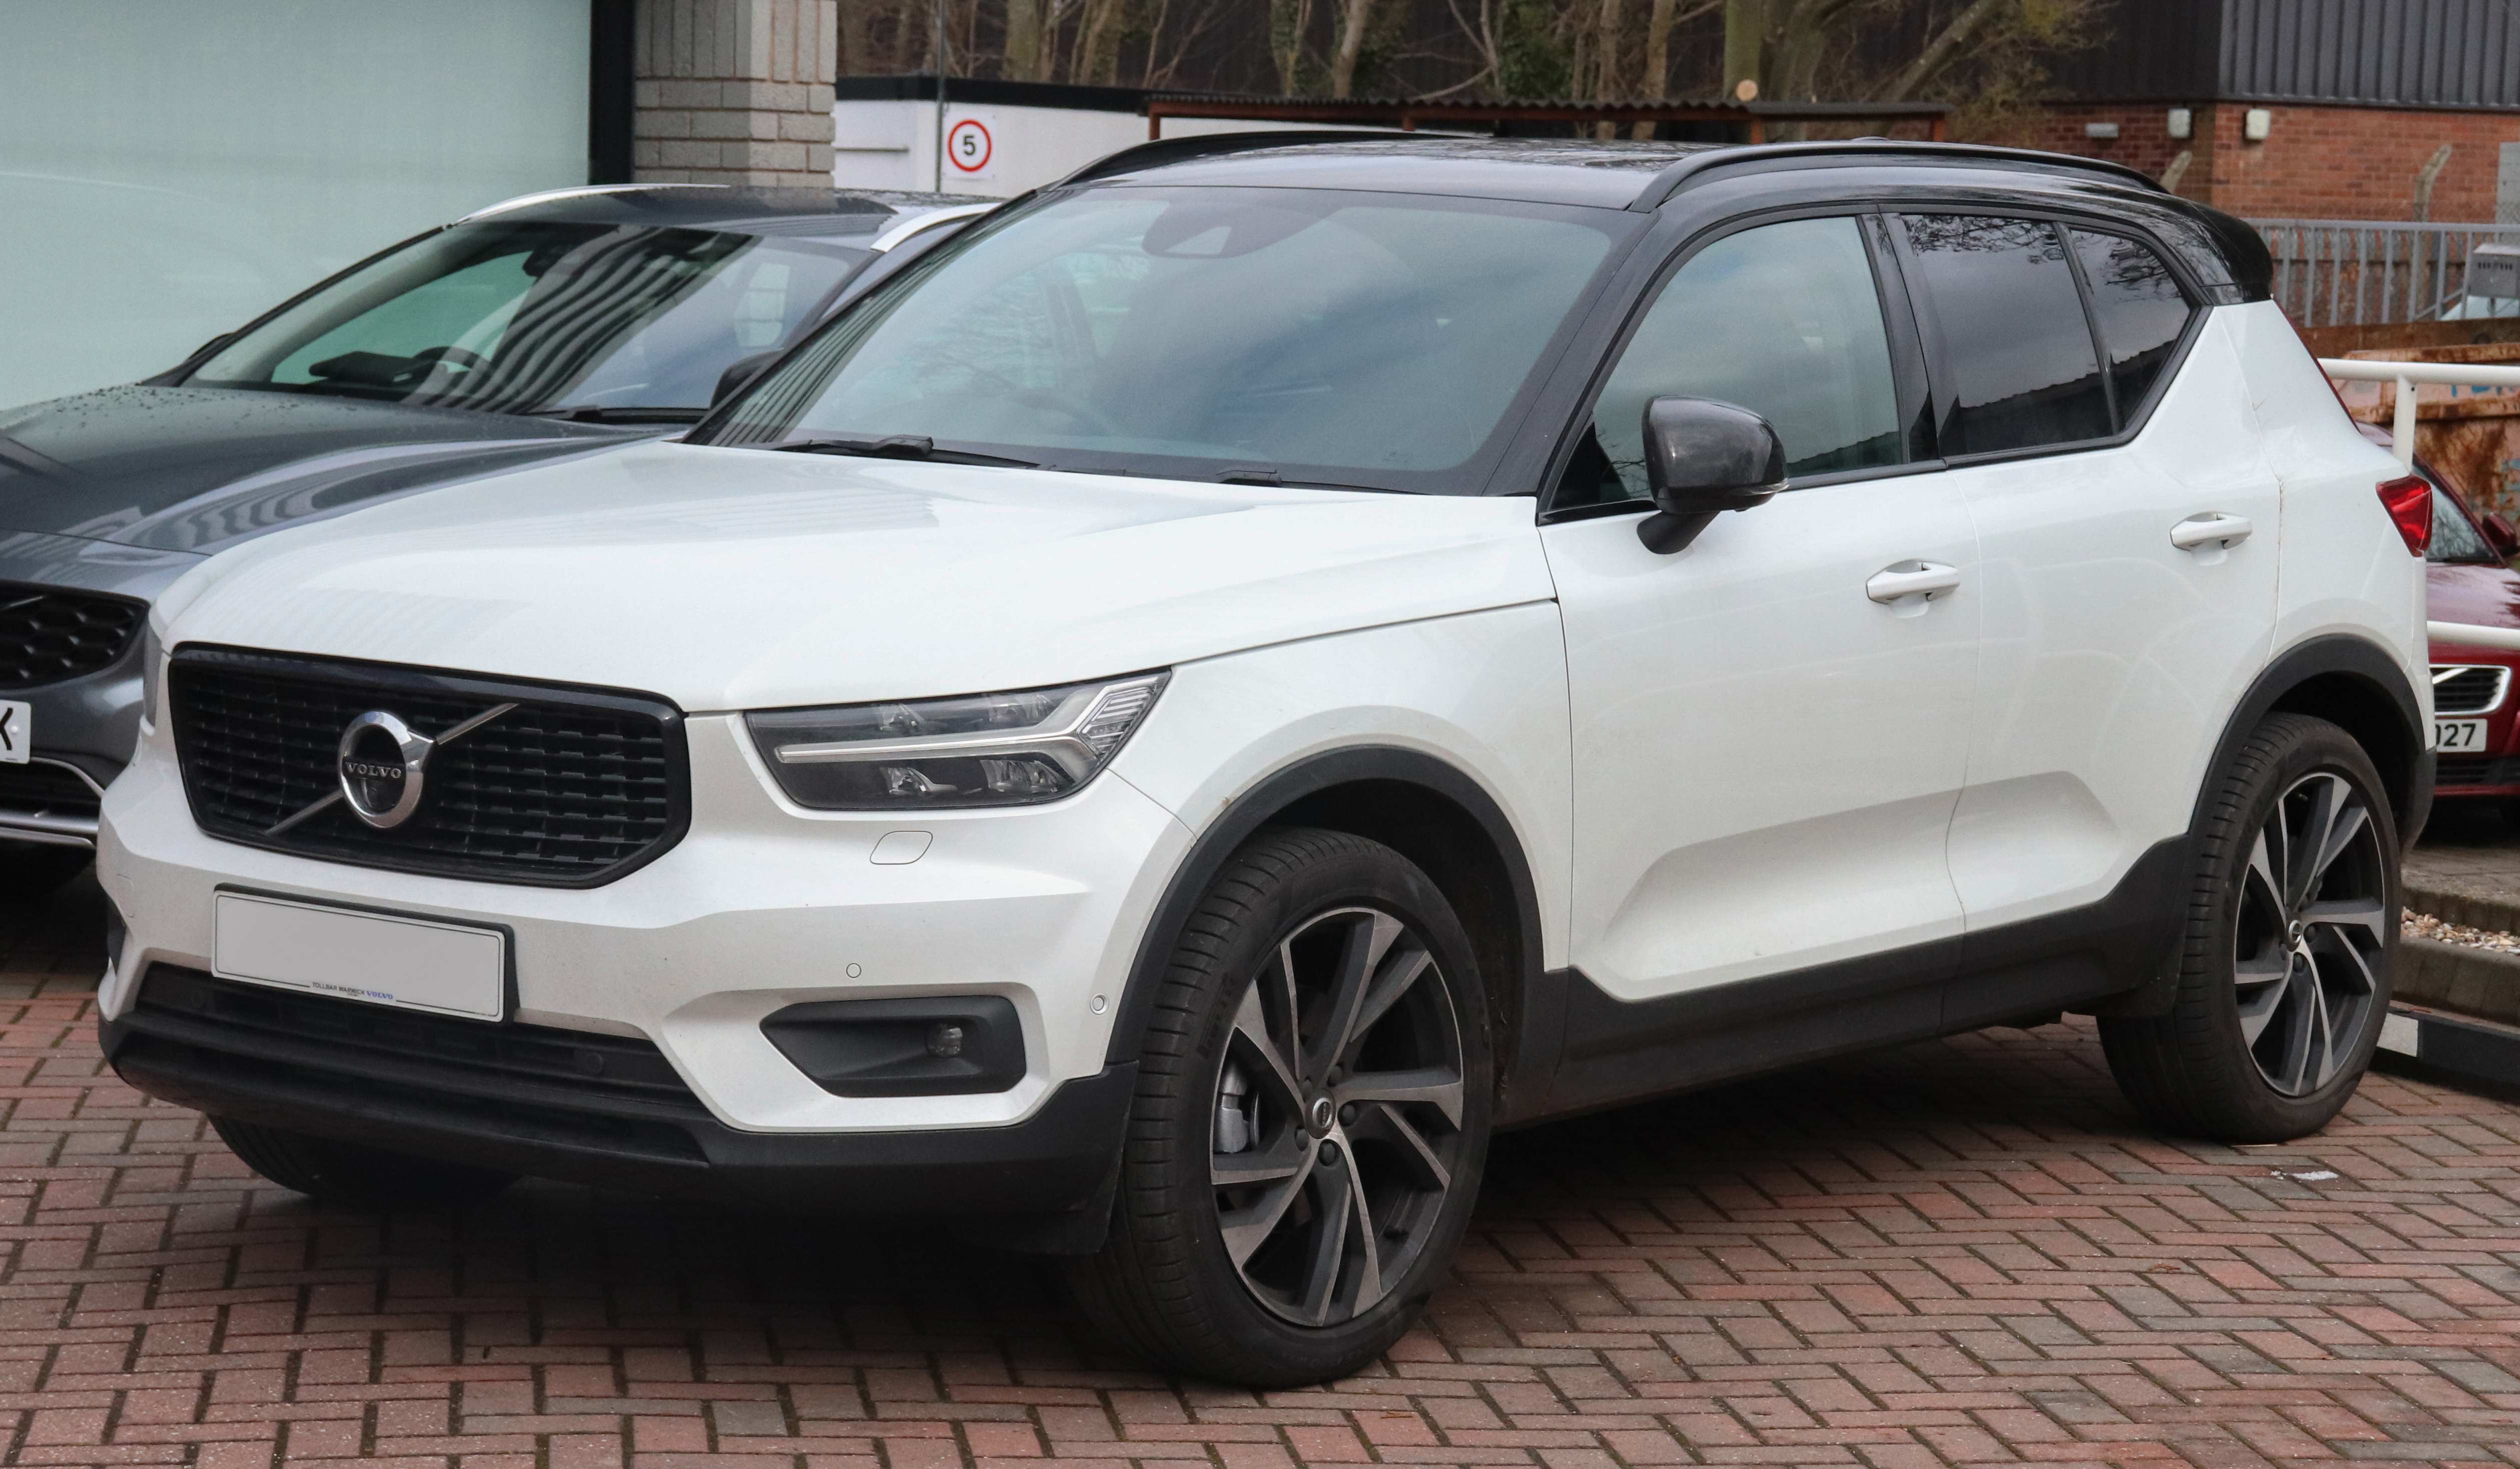 66 All New 2019 Volvo Xc40 Owners Manual Images